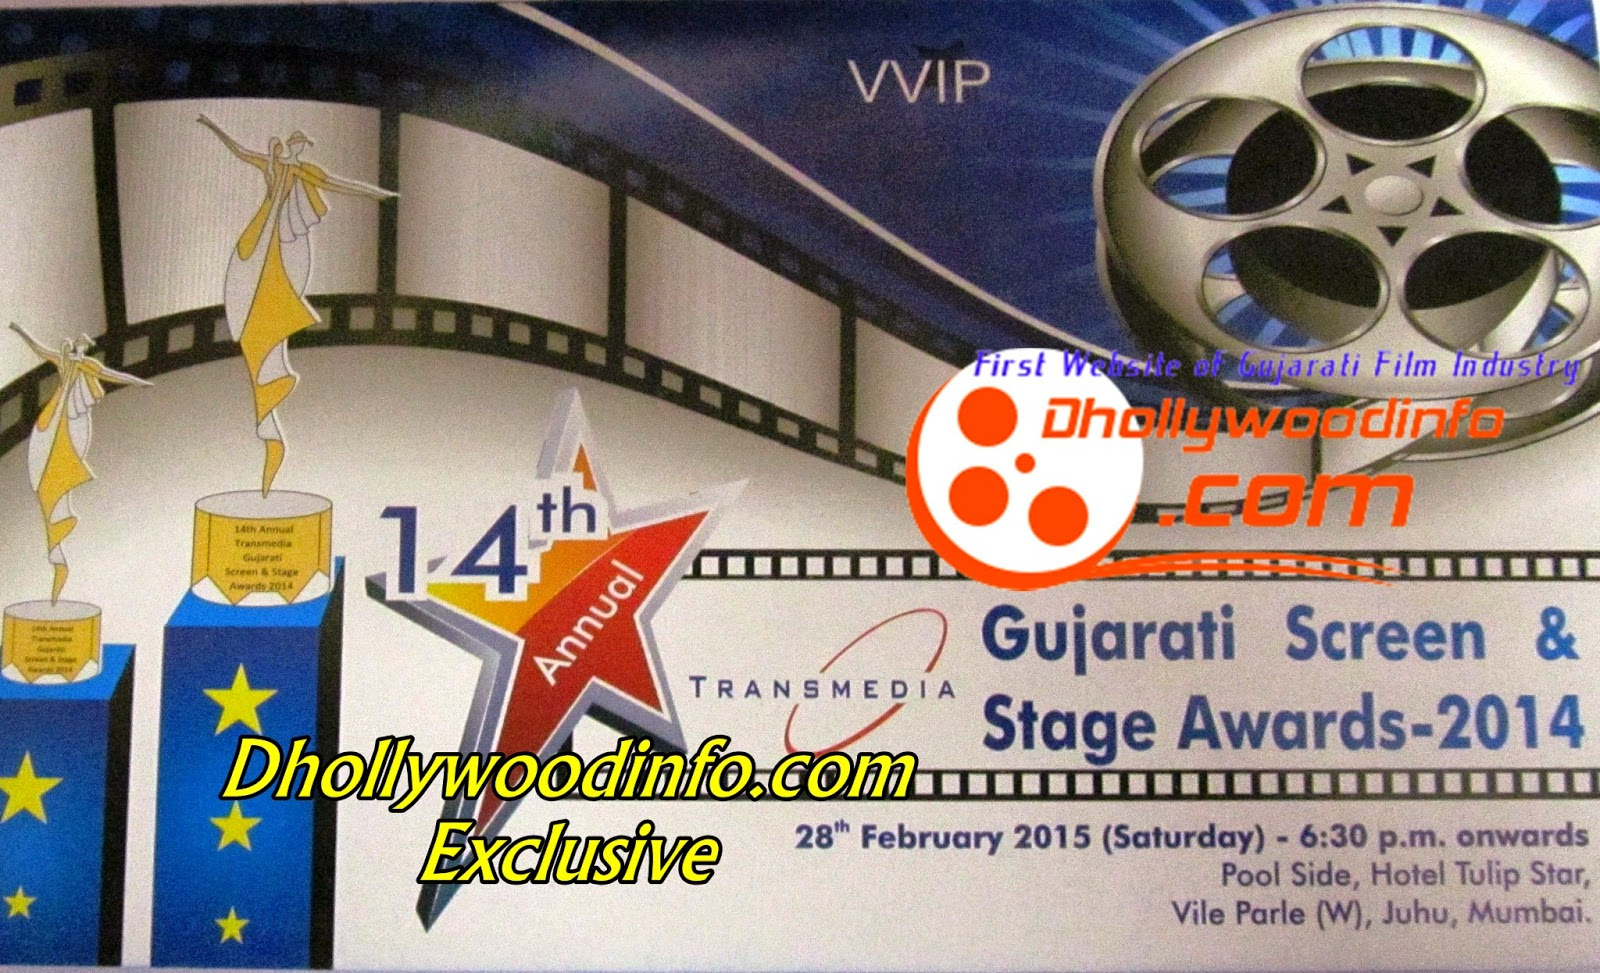 Transmedia Gujarati Screen & Stage Awards 2014 in Mumbai on 28th Feb 2015